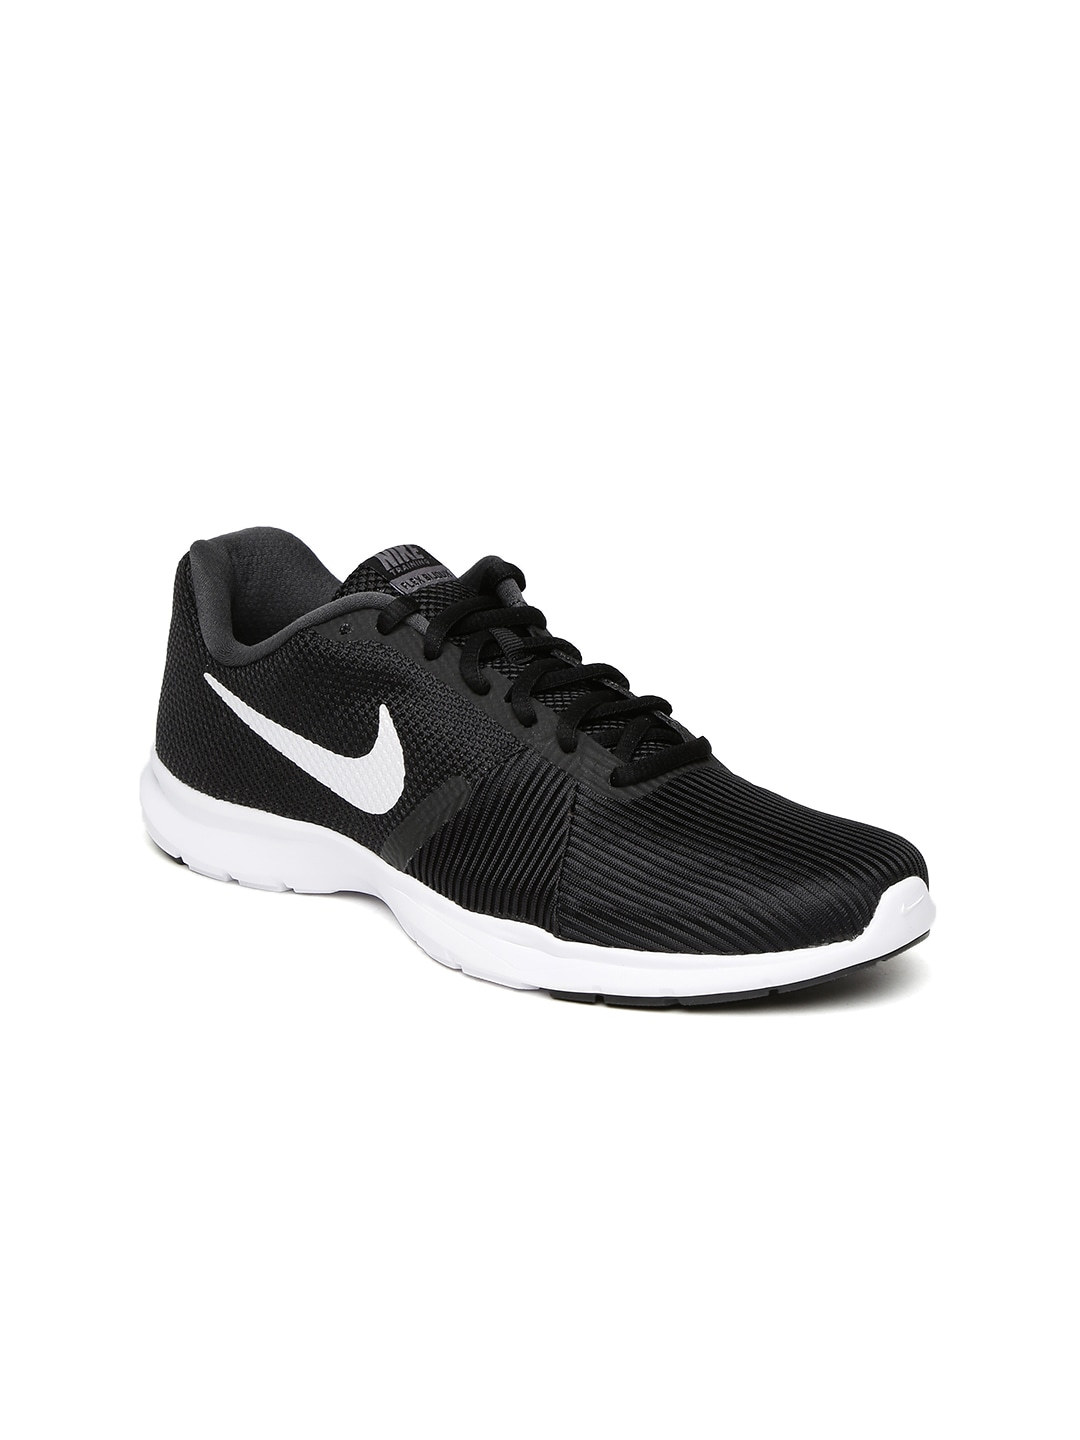 international sourcing in athletic footwear nike reebok By profa selvarasu international sourcing a case on atheletic footwear: nike and reebok questions for case discussion what is the prime issue in the case.